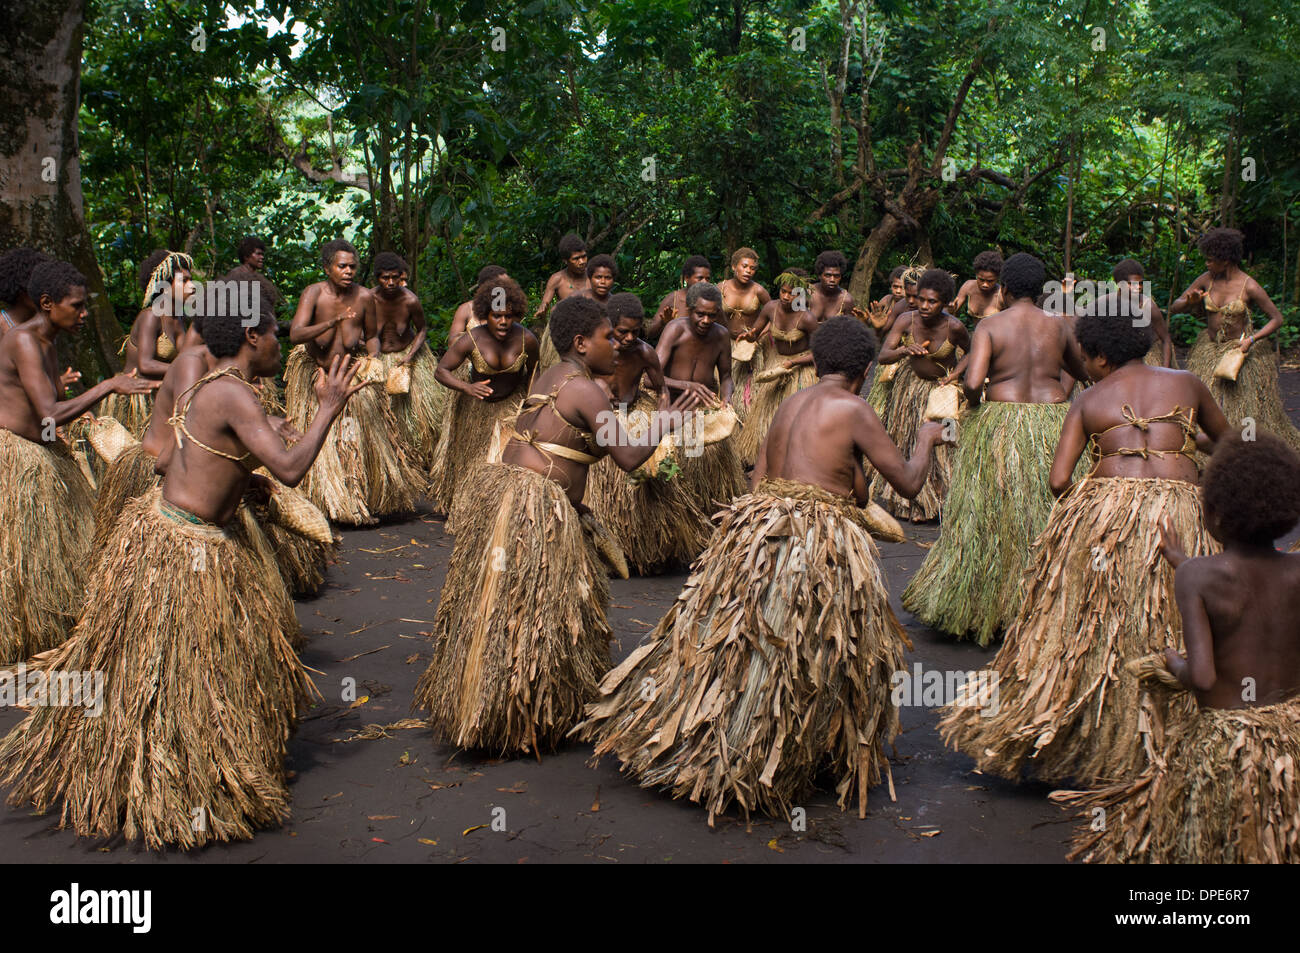 Women in grass skirts, performing Kastom (traditional culture) dancing at Yakul Village, Tanna Island, Vanuatu - Stock Image